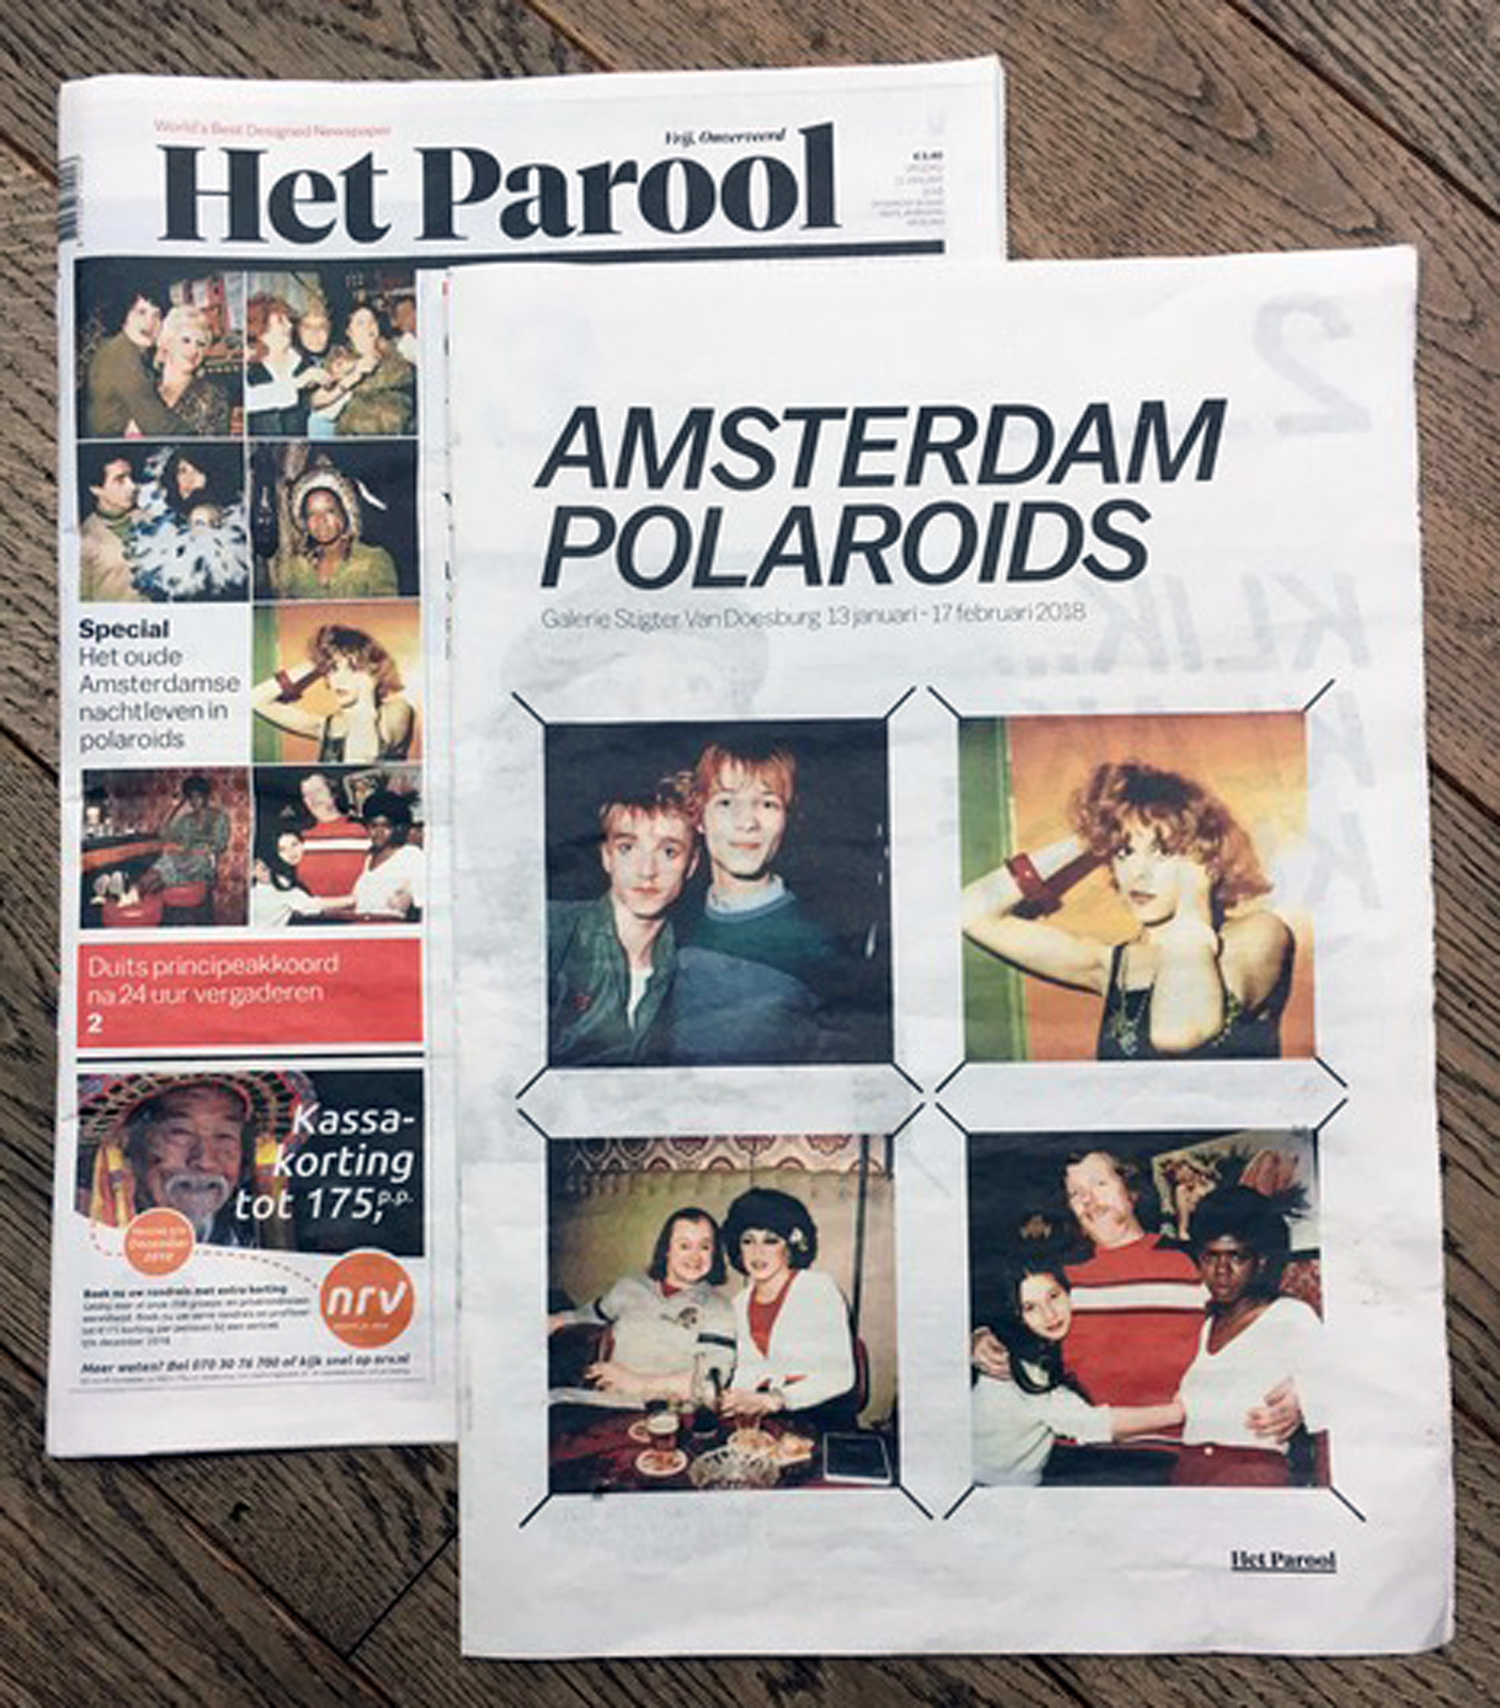 In conjunction with our exhibition of the Amsterdam Polaroids at the Stigter Van Doesberg Gallery, the newspaper  Het Parool  published a special 8-page supplement, January 13, 2018.